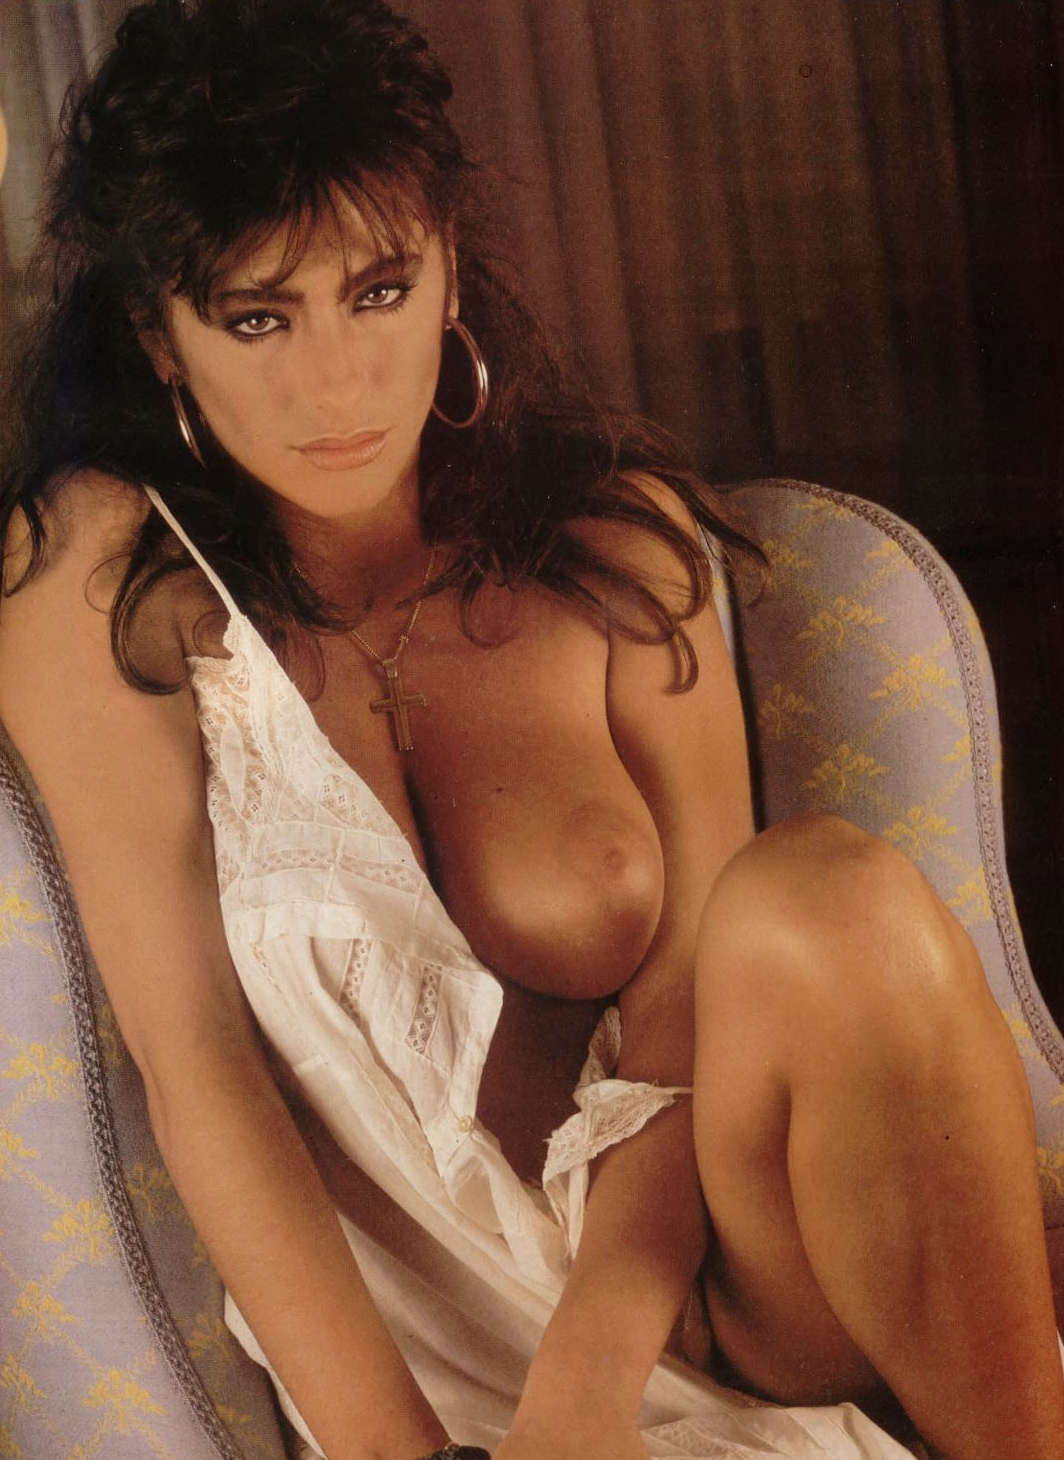 girl italian naked sabrina salerno